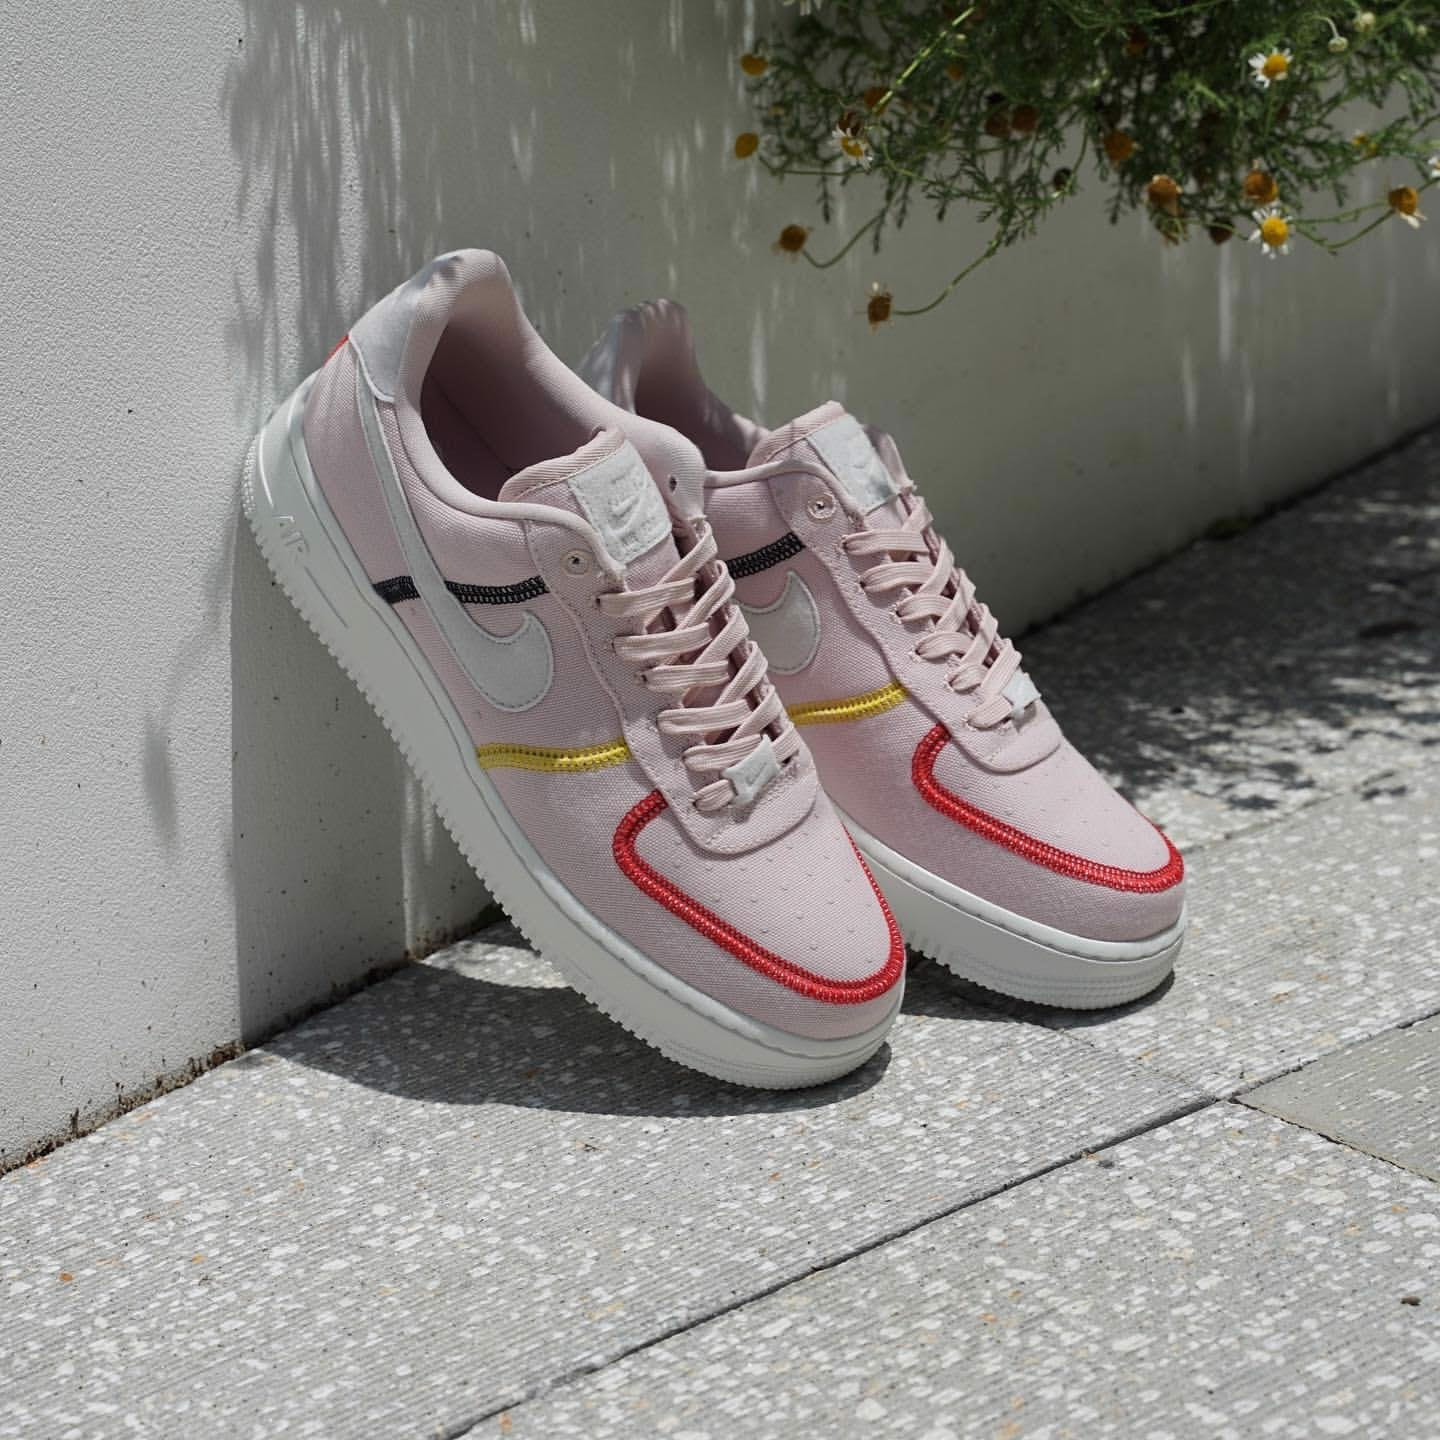 Nike Air Force 1 '07 LX Silt Red CK6572-600